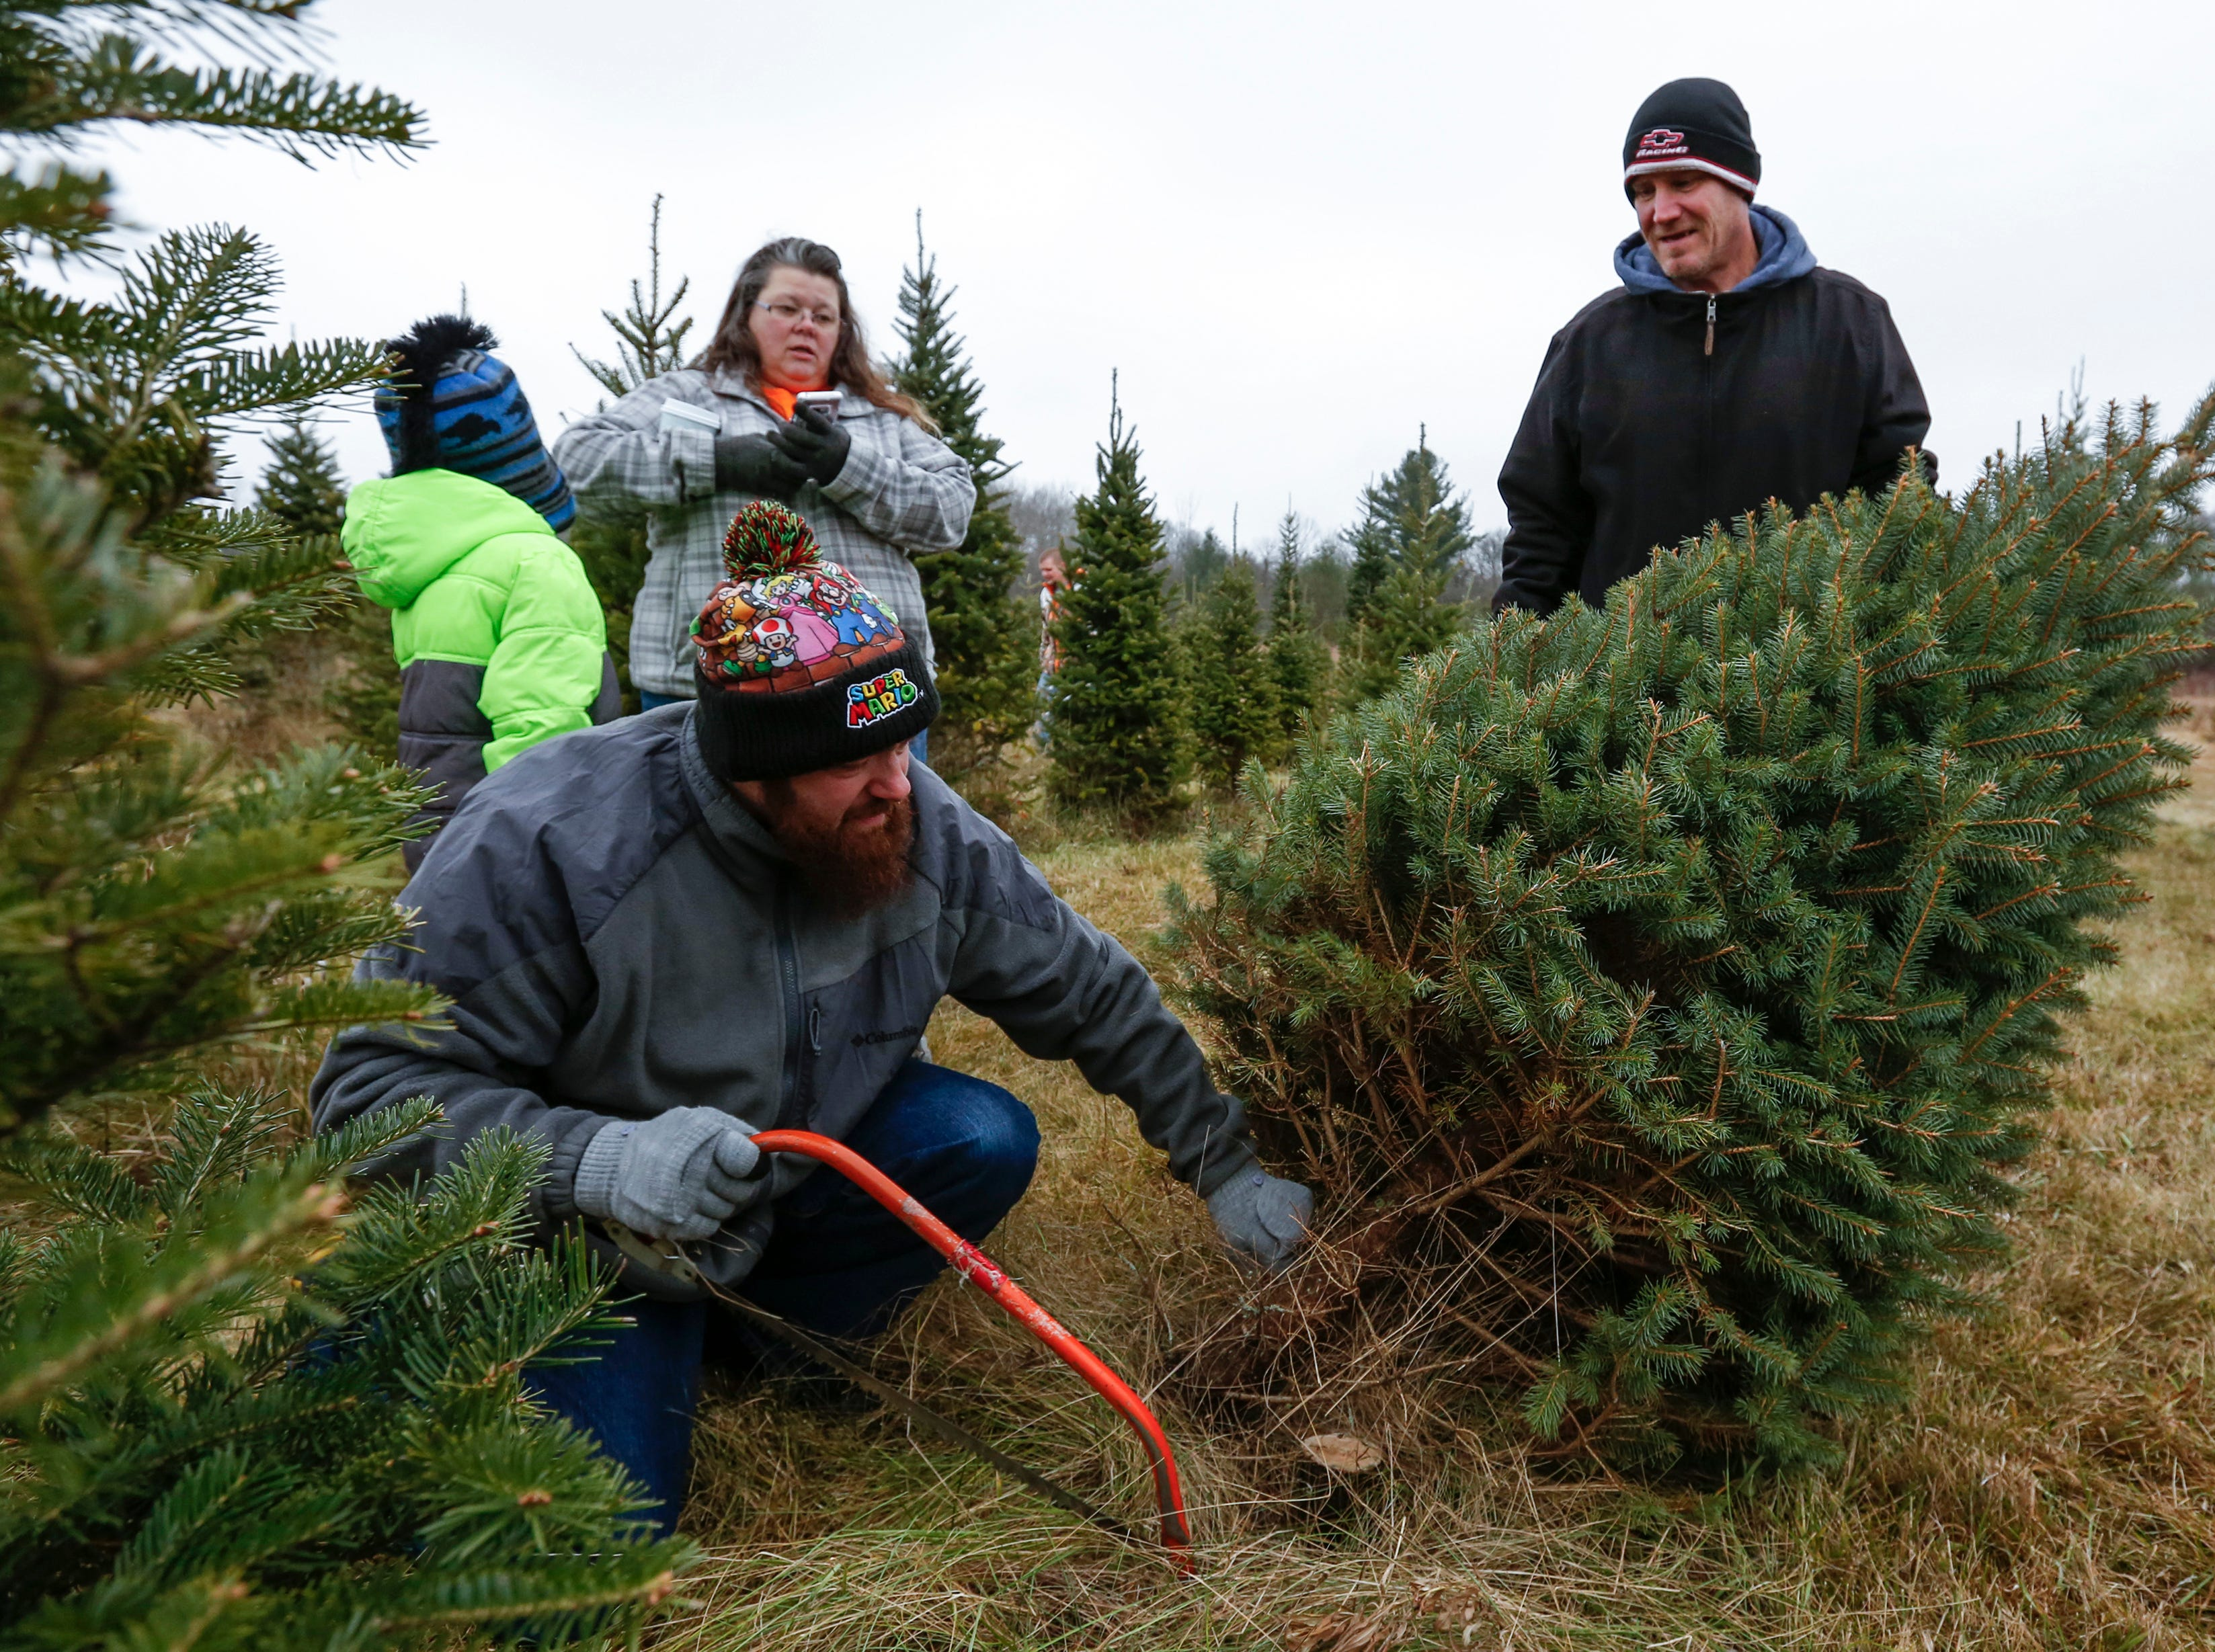 Cody Graham, of Manitowoc, cuts down a Christmas tree with his family as David Schultz keeps it steady at Taylor Trees Saturday, December 1, 2018, in Mishicot, Wis. Joshua Clark/USA TODAY NETWORK-Wisconsin